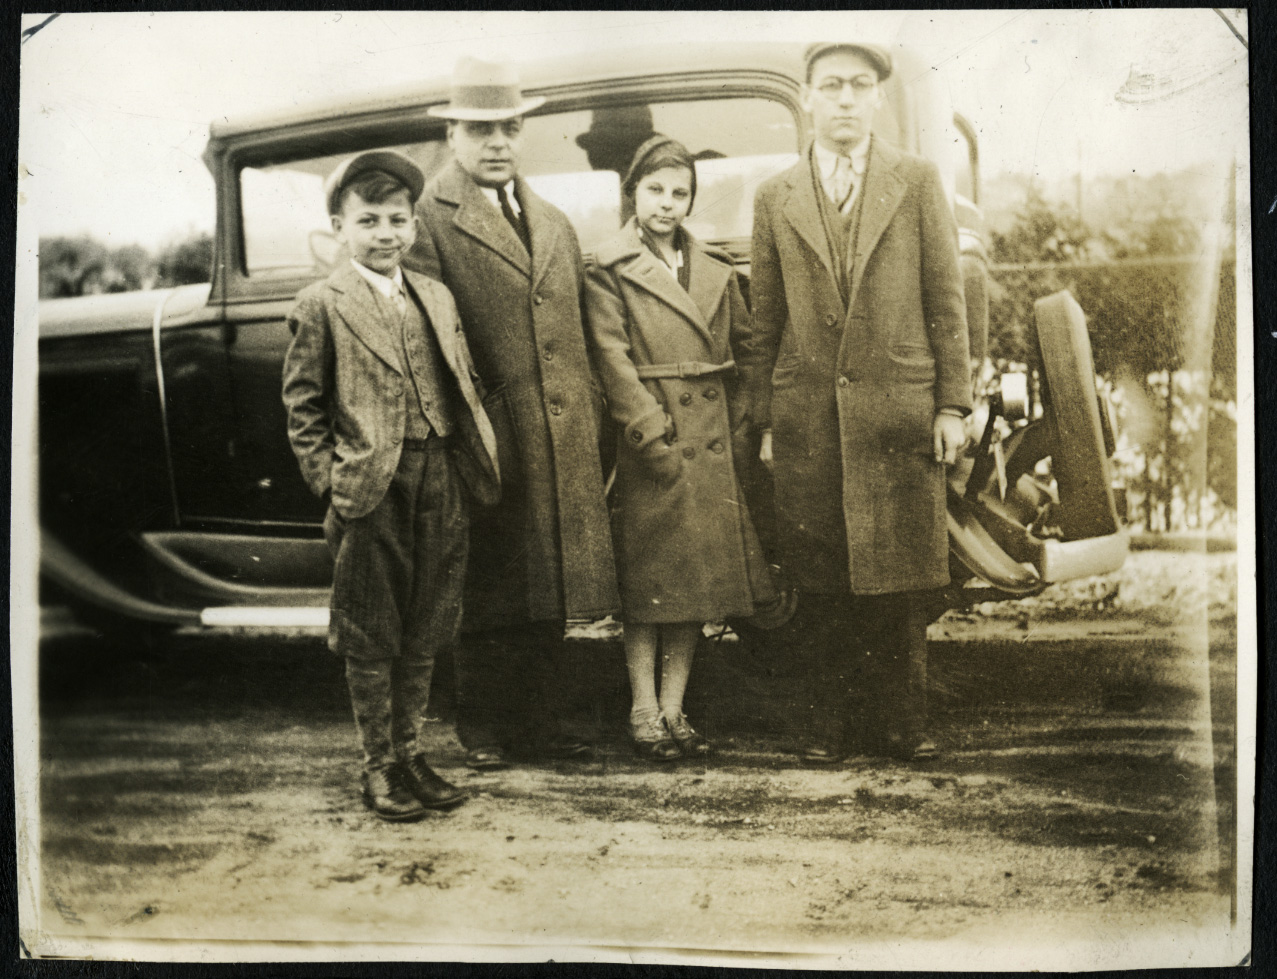 Politella Family Papers image